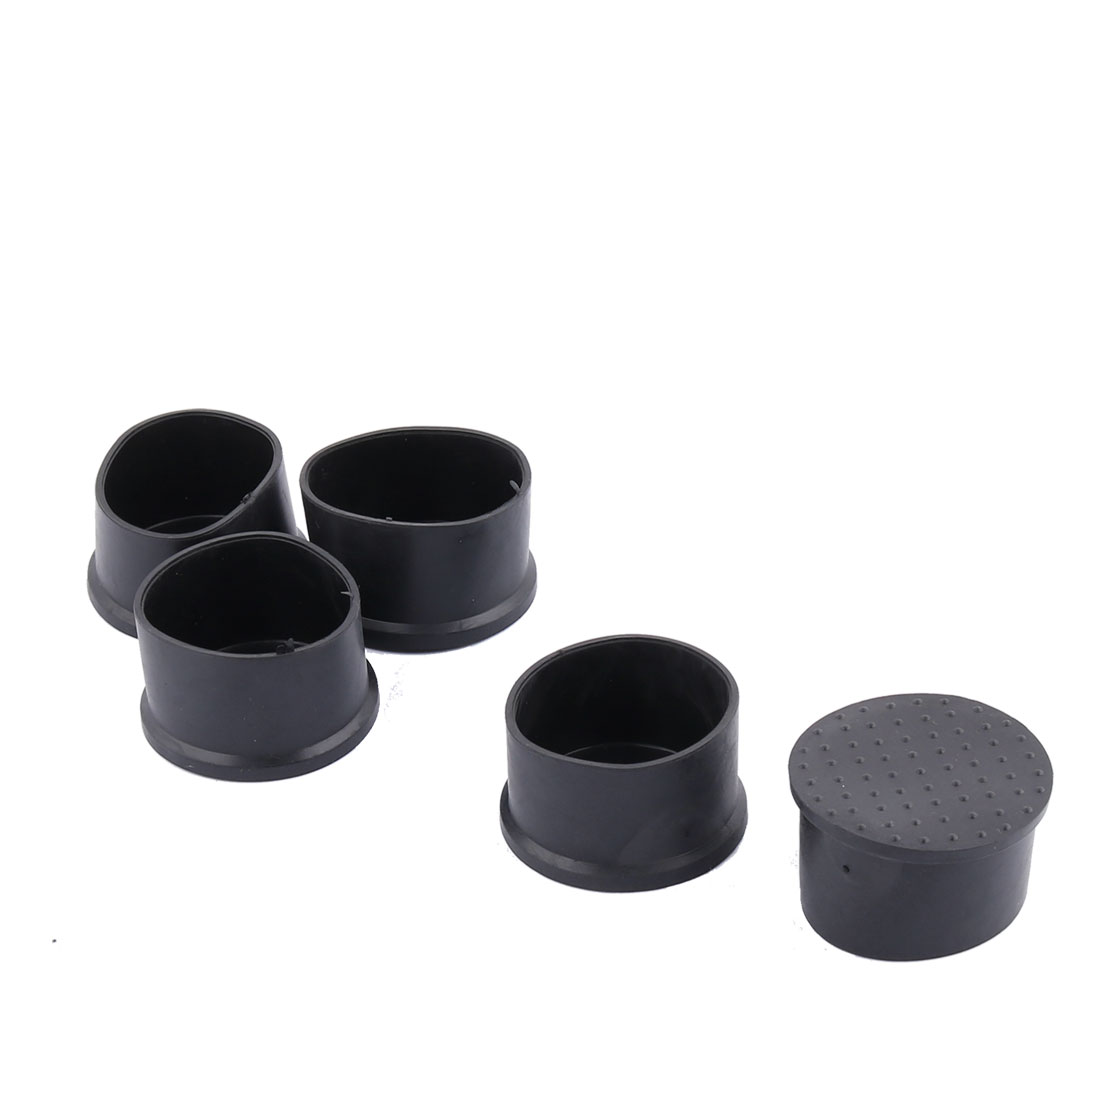 Famliy Furniture PVC Round Design Desk Bench Leg Protector Tube Insert Black 5pcs